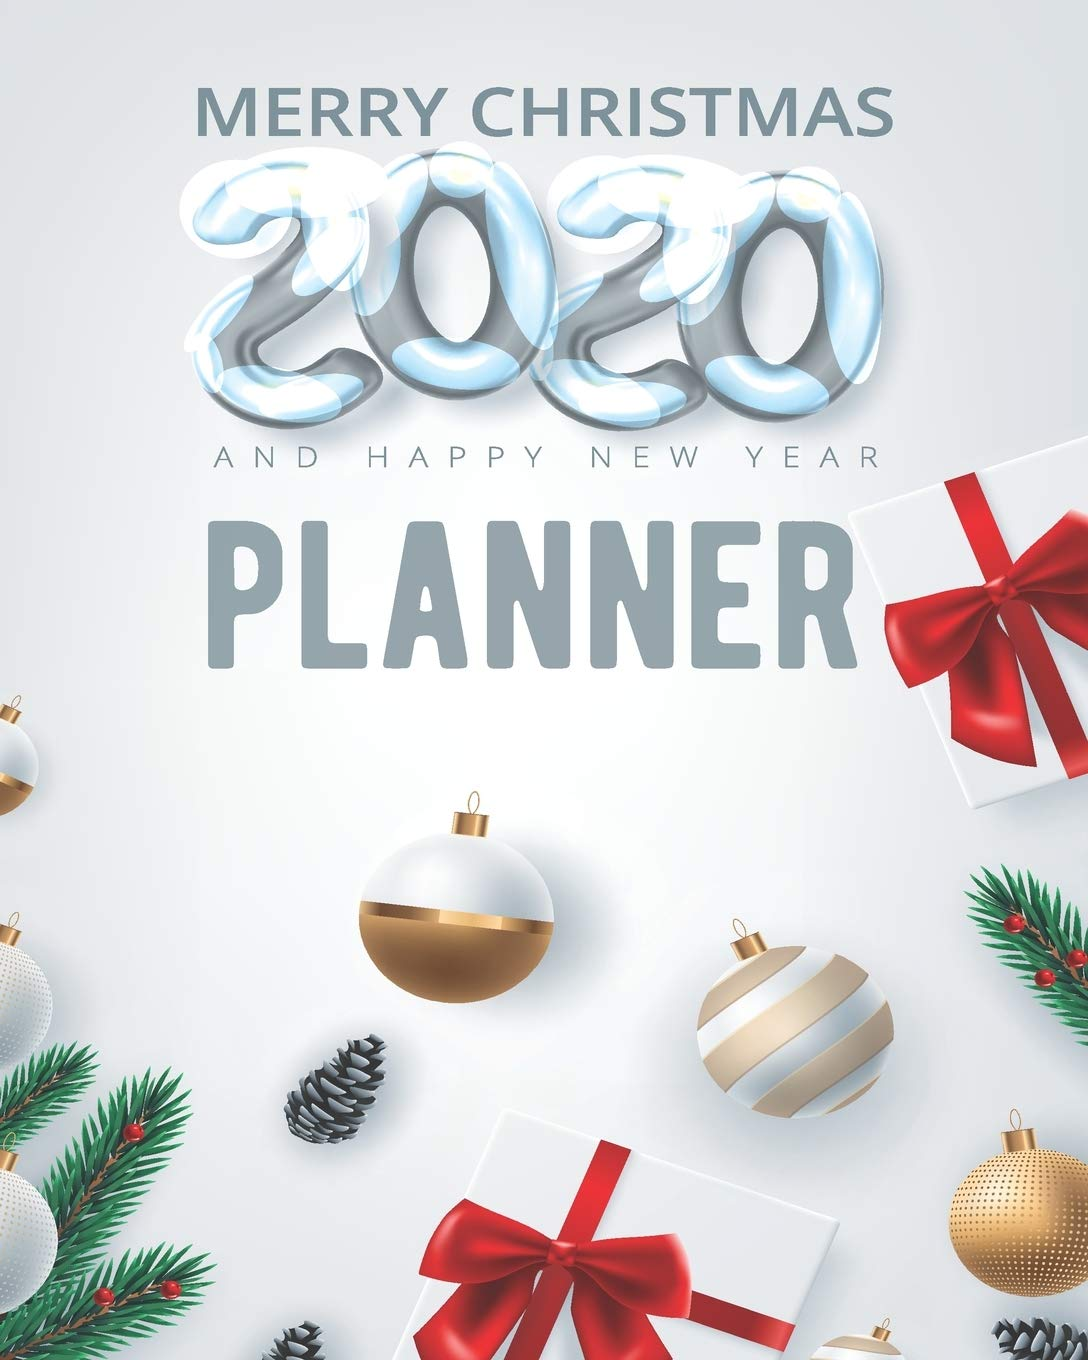 Christmas And 2020 New Year Holiday Planner Christmas Xmas Planner Black Friday Planner Memory Book To Write Or Draw In Men Women Girls Boys 100 Pages 8 X 10 Clive Linda 9781704572574 Amazon Com Books